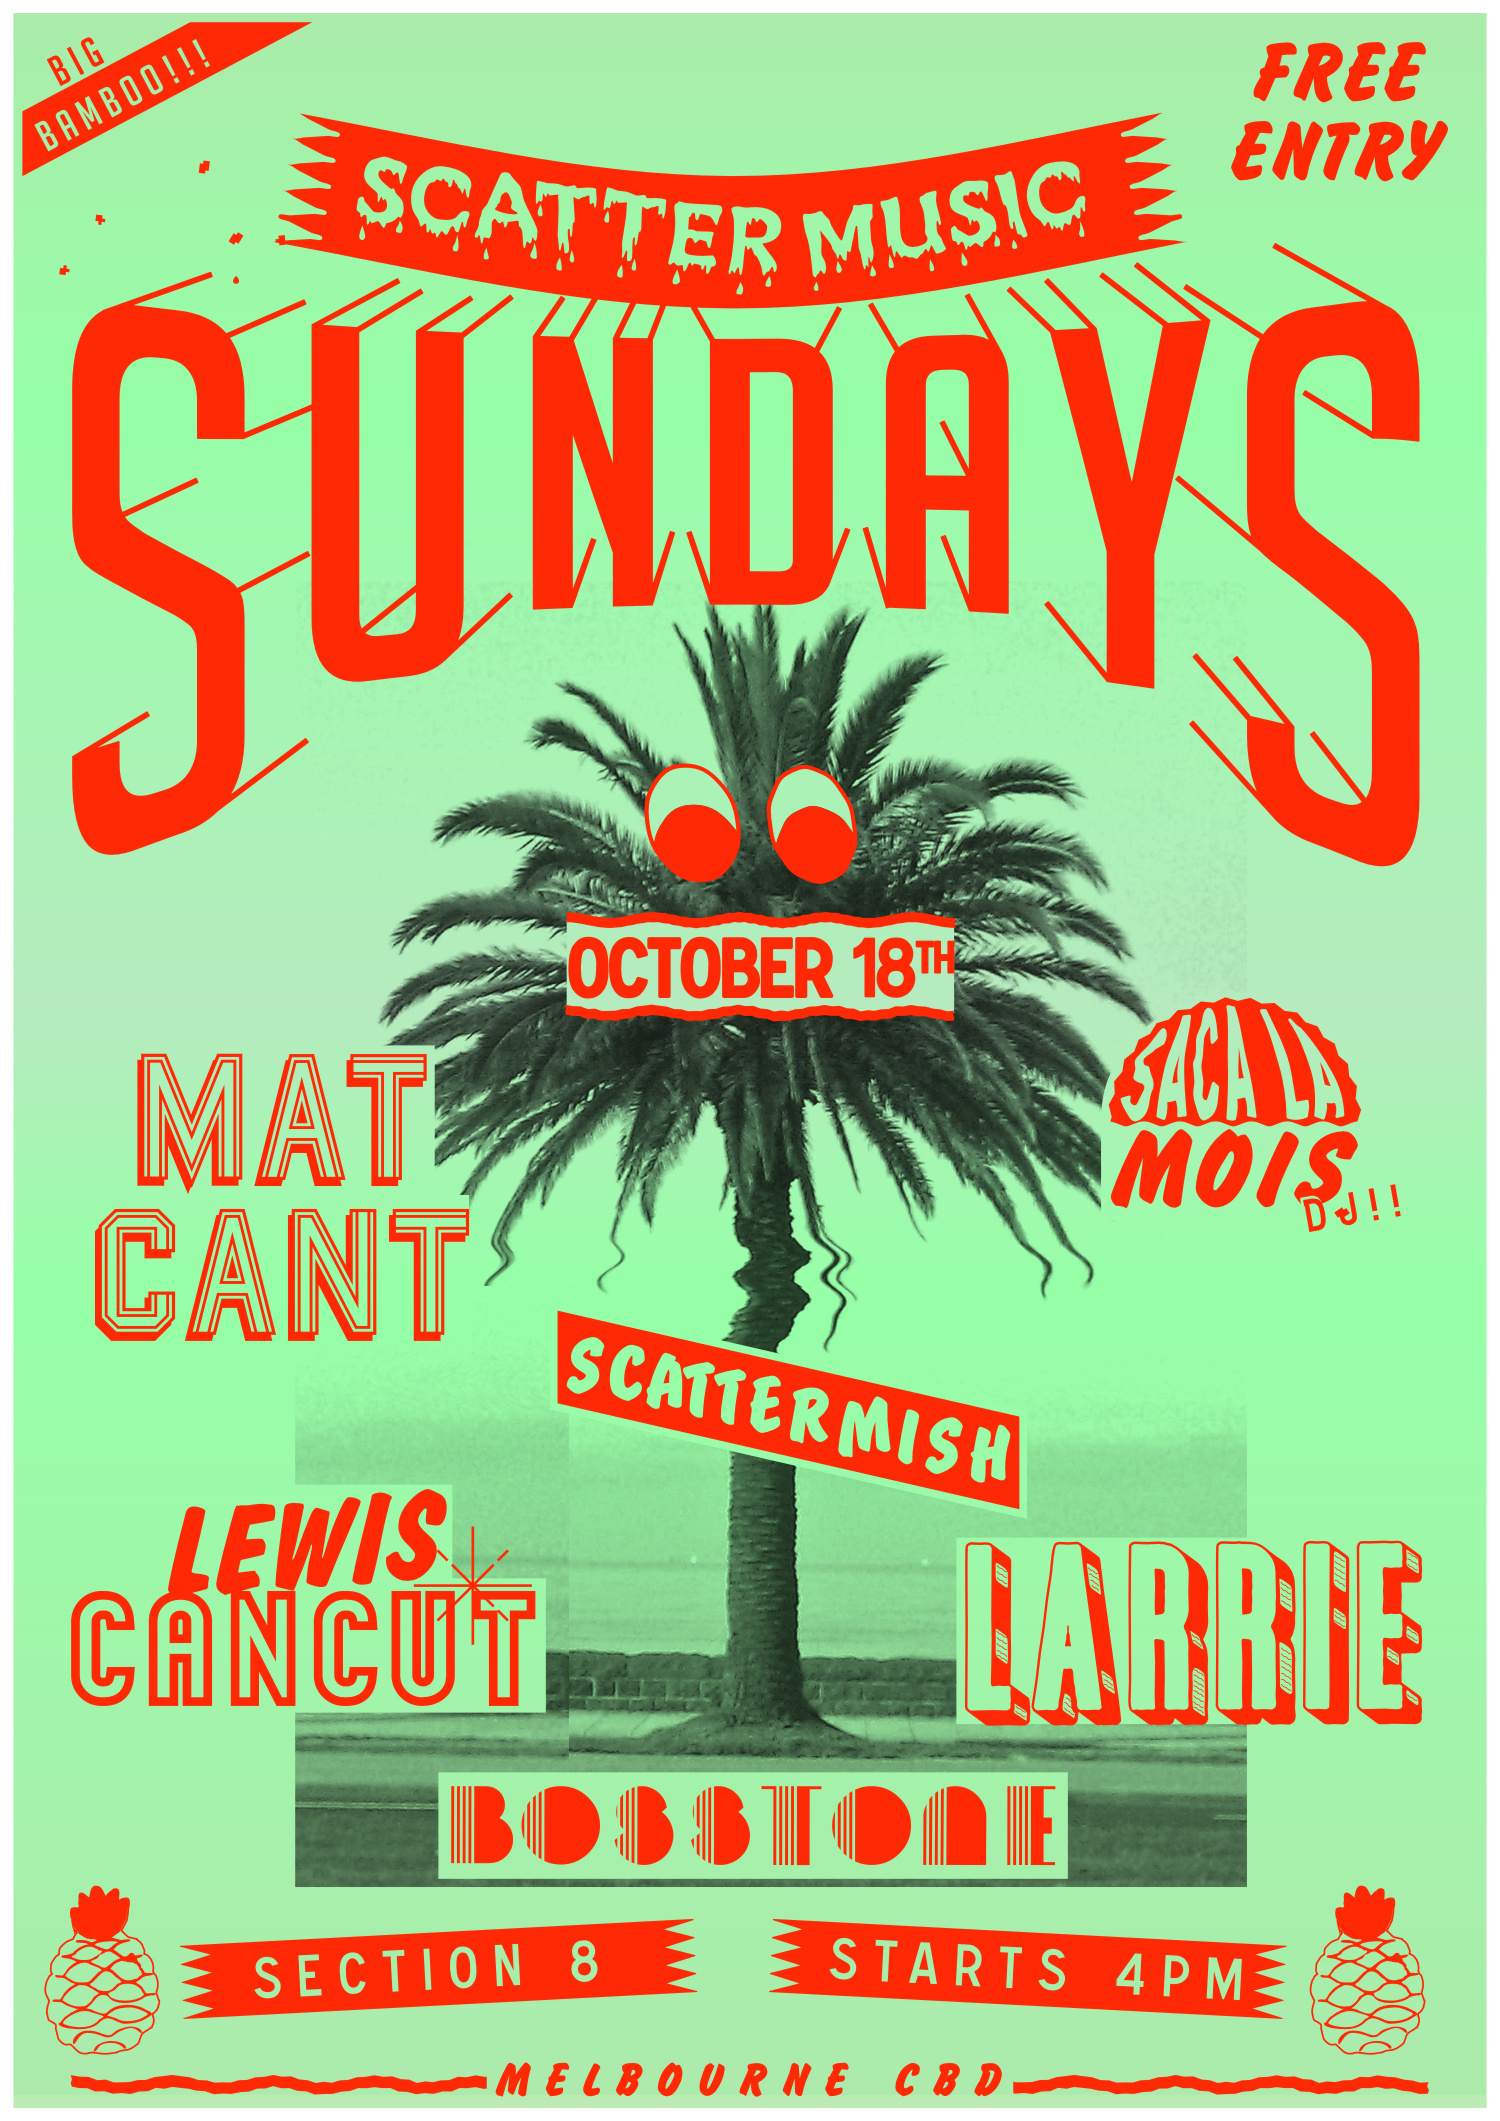 Scattermusic Sundays - Sunday October 13th - Section 8 - Big Hairy Fern